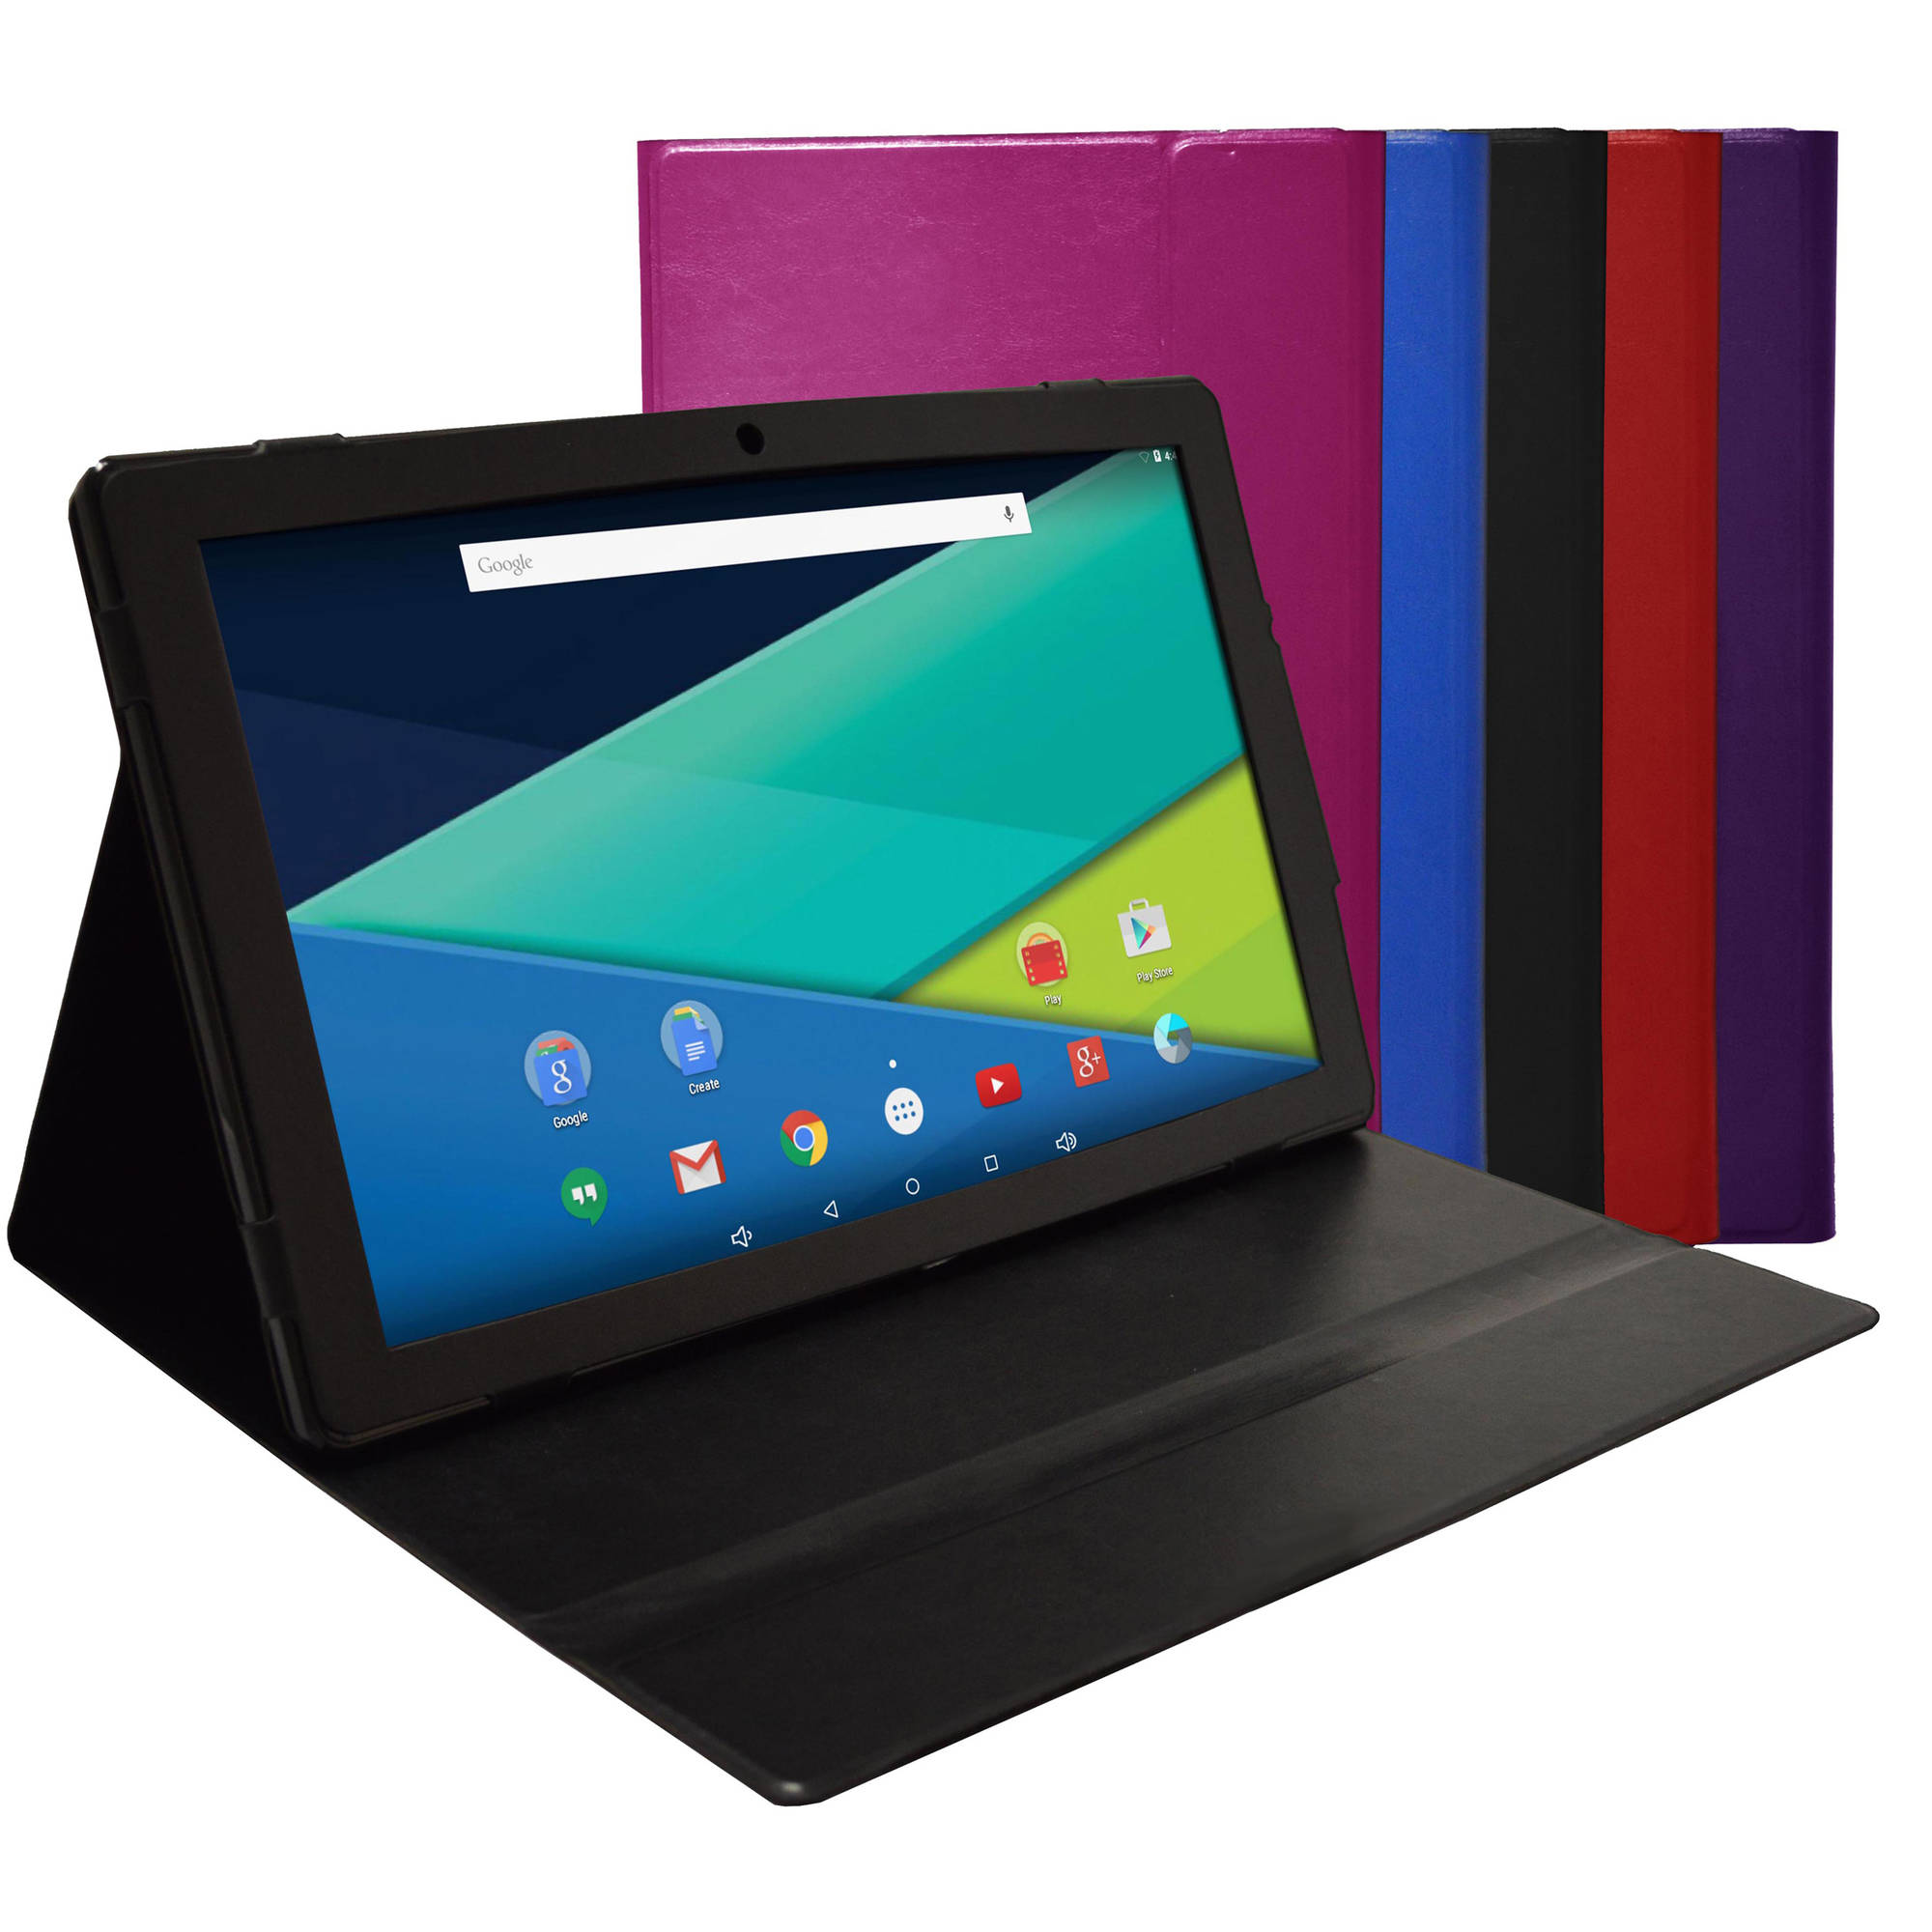 """Visual Land Prestige Elite with WiFi 13.3"""" Touchscreen Tablet PC Featuring Android 5.0 (Lollipop) Operating System"""